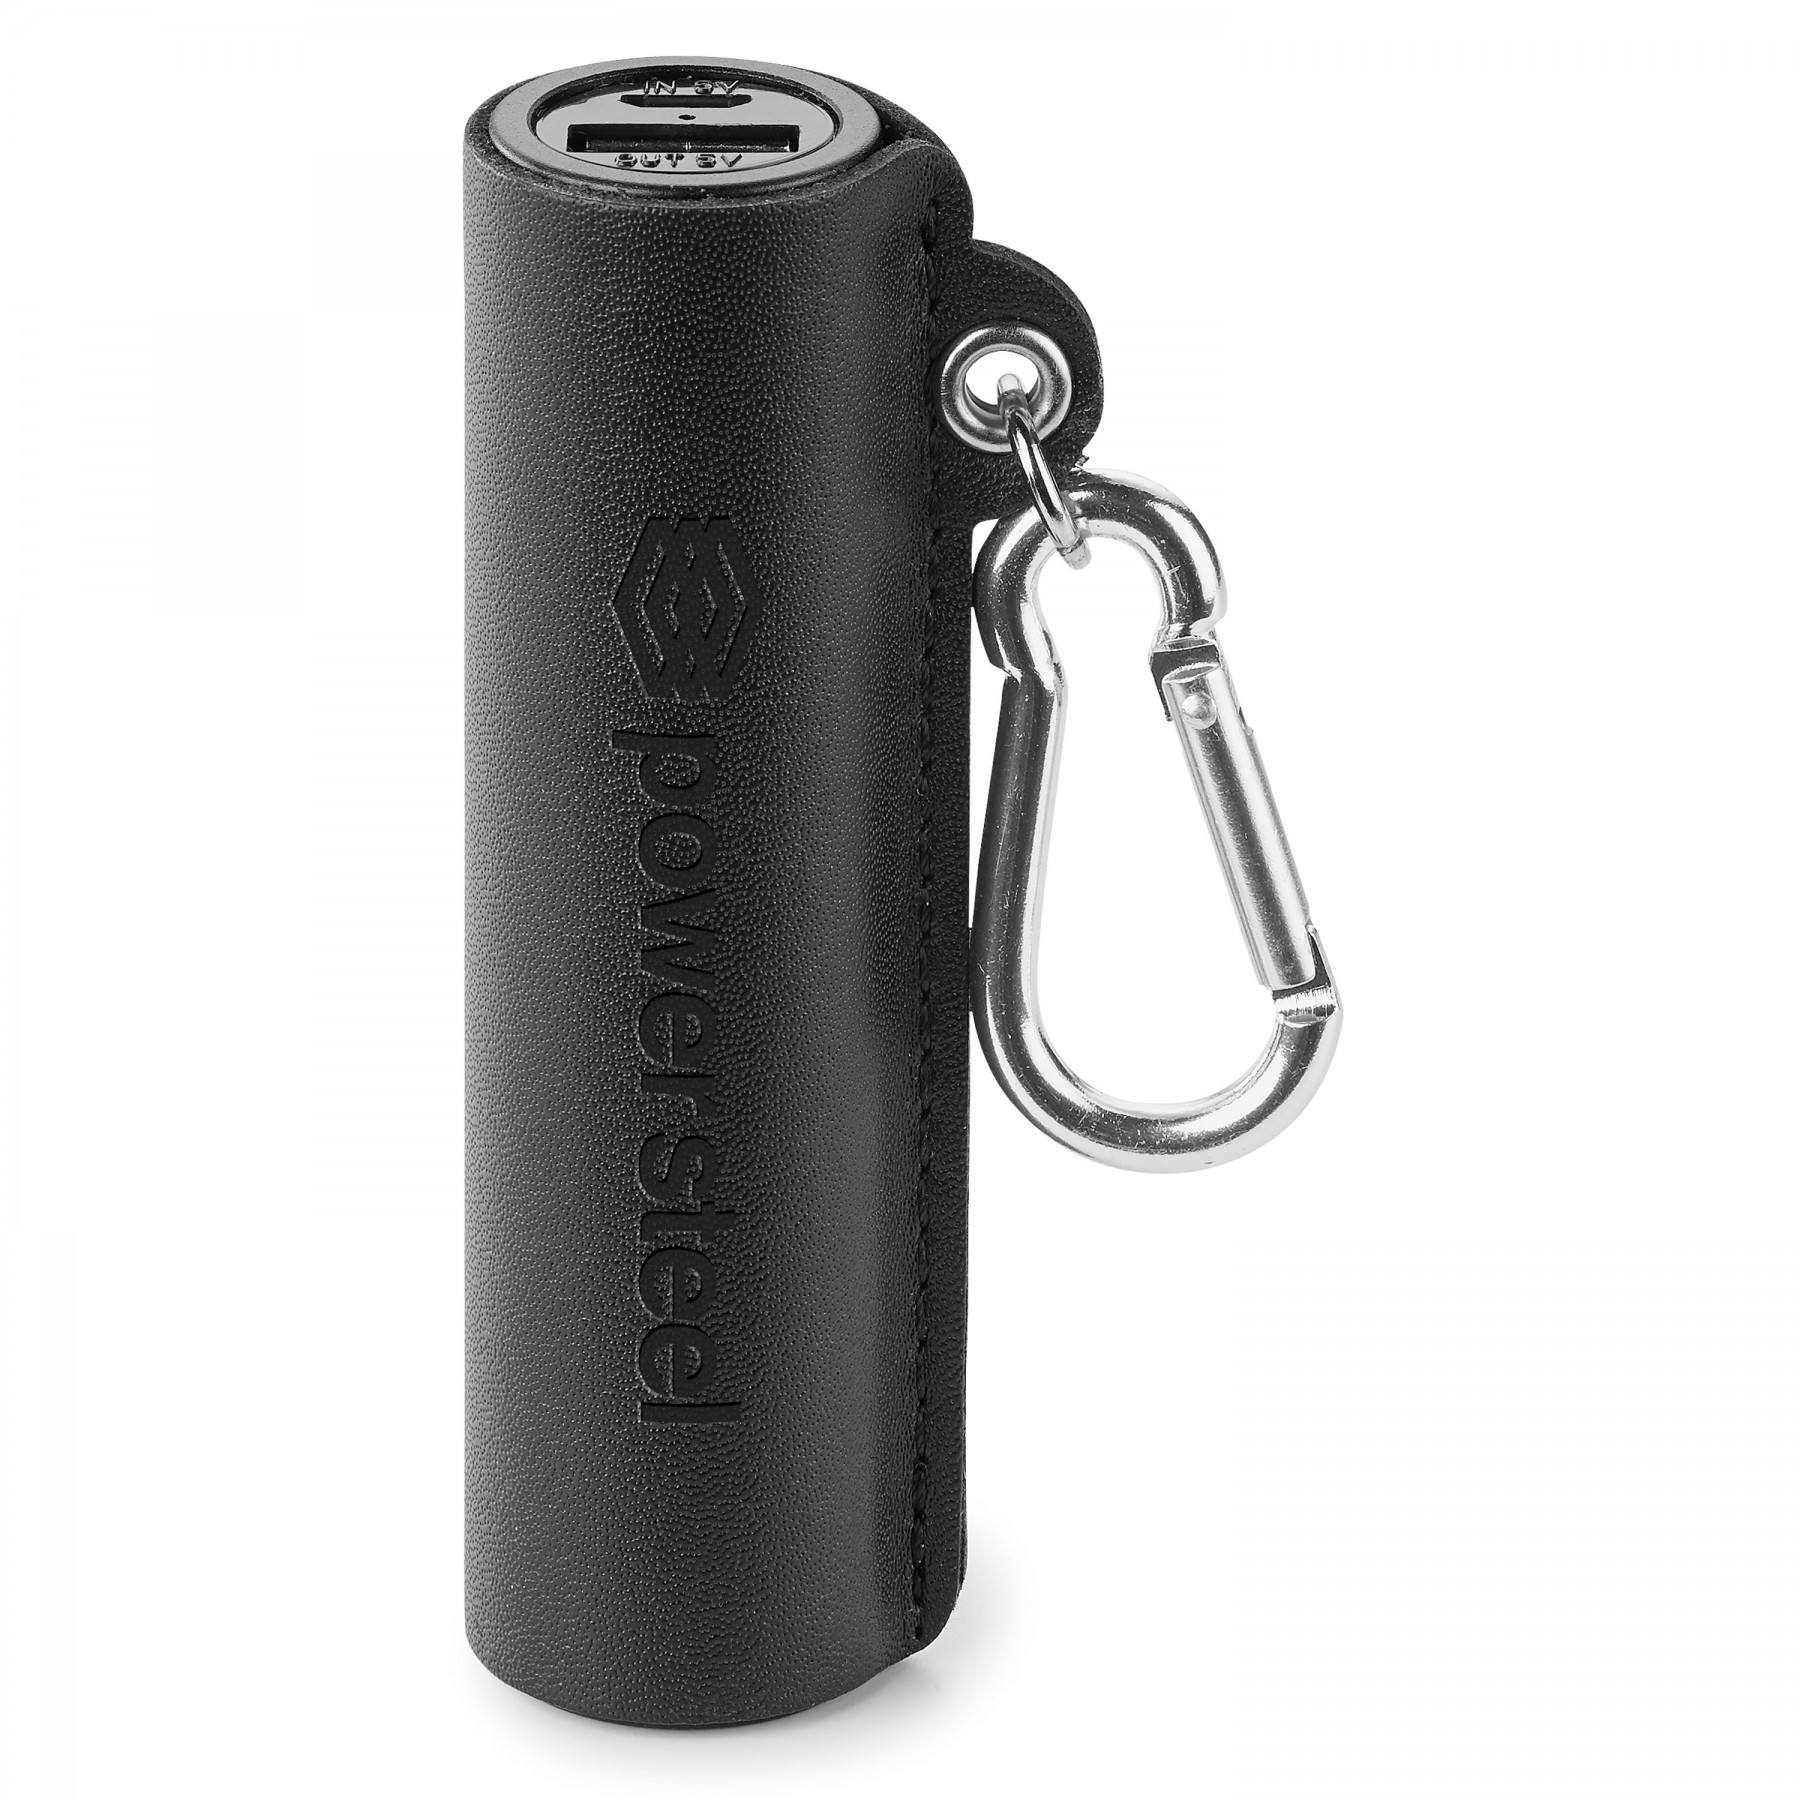 GENUINE LEATHER 2,200 mAh UL CERTIFIED POWER BANK, T9934, Debossed Logo